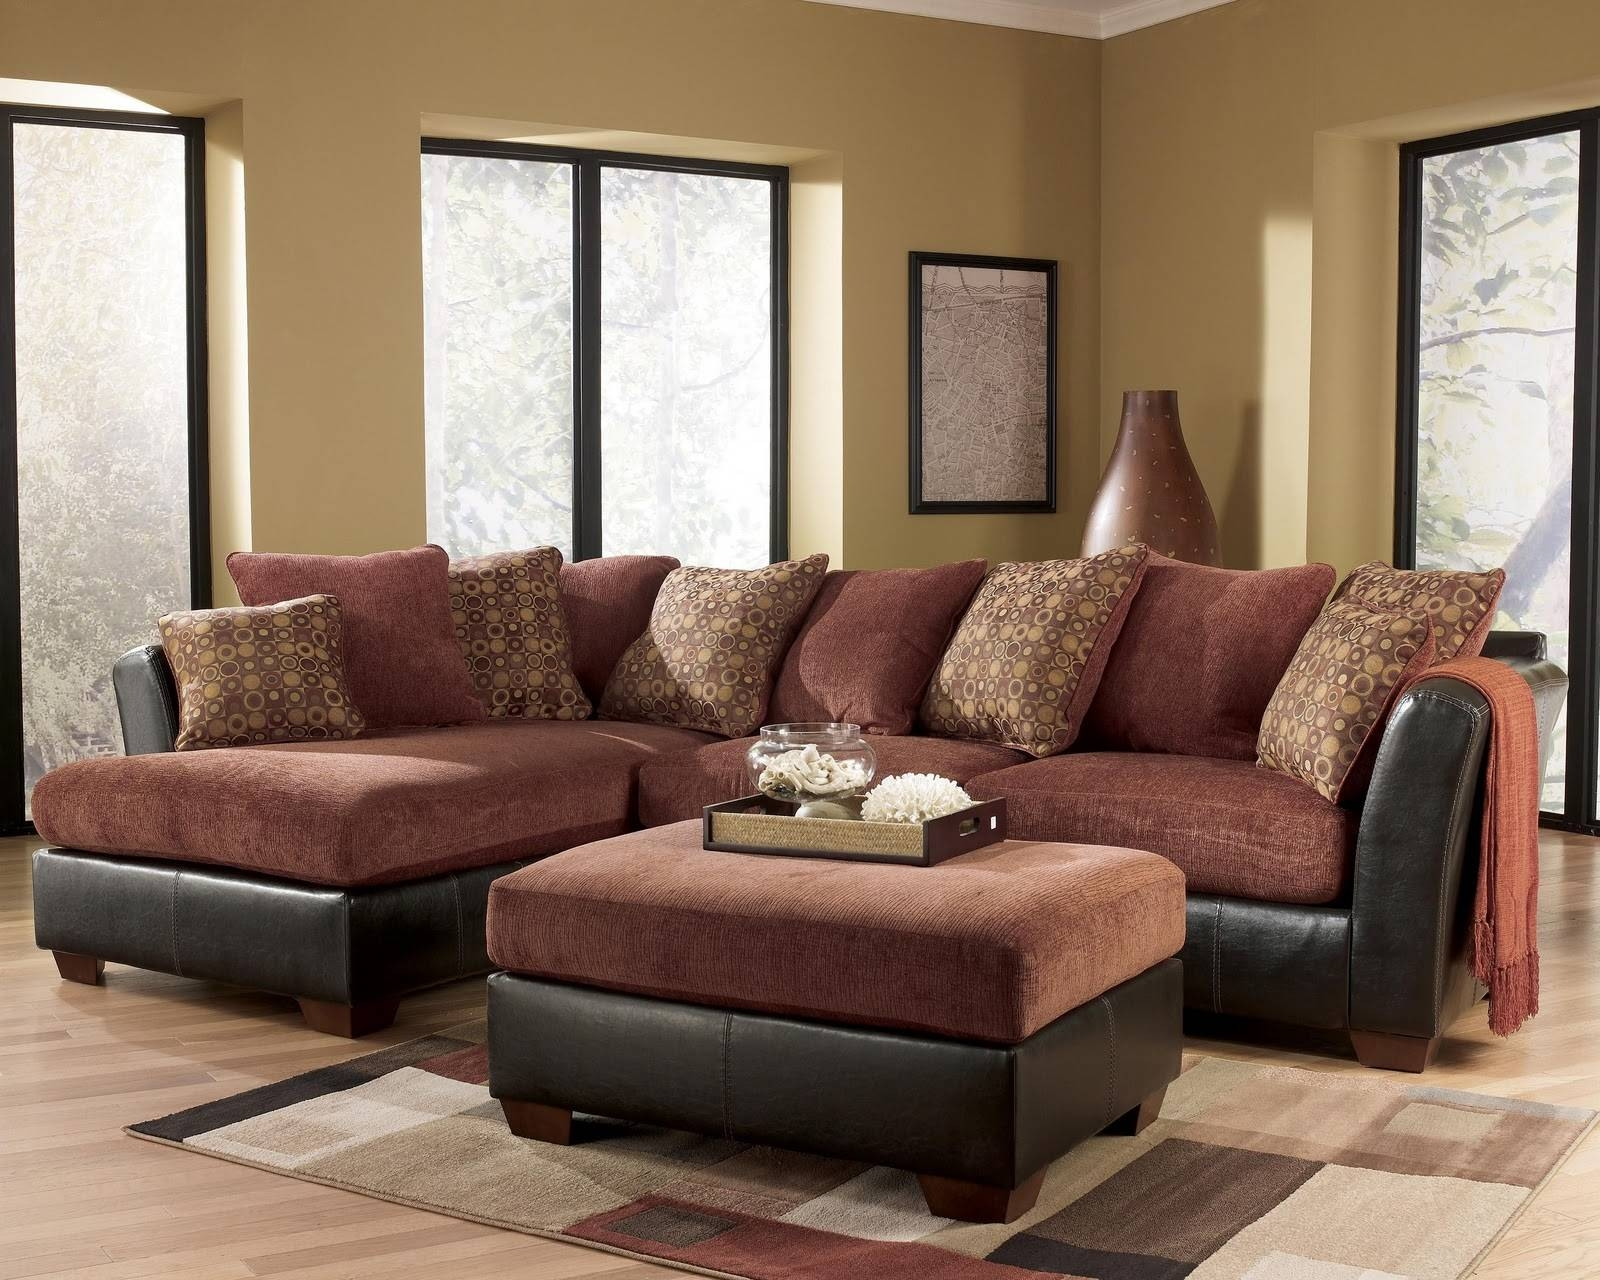 Ashley Furniture Commando Black Sofa | Centerfieldbar Regarding Ashley  Furniture Leather Sectional Sofas (Image 1